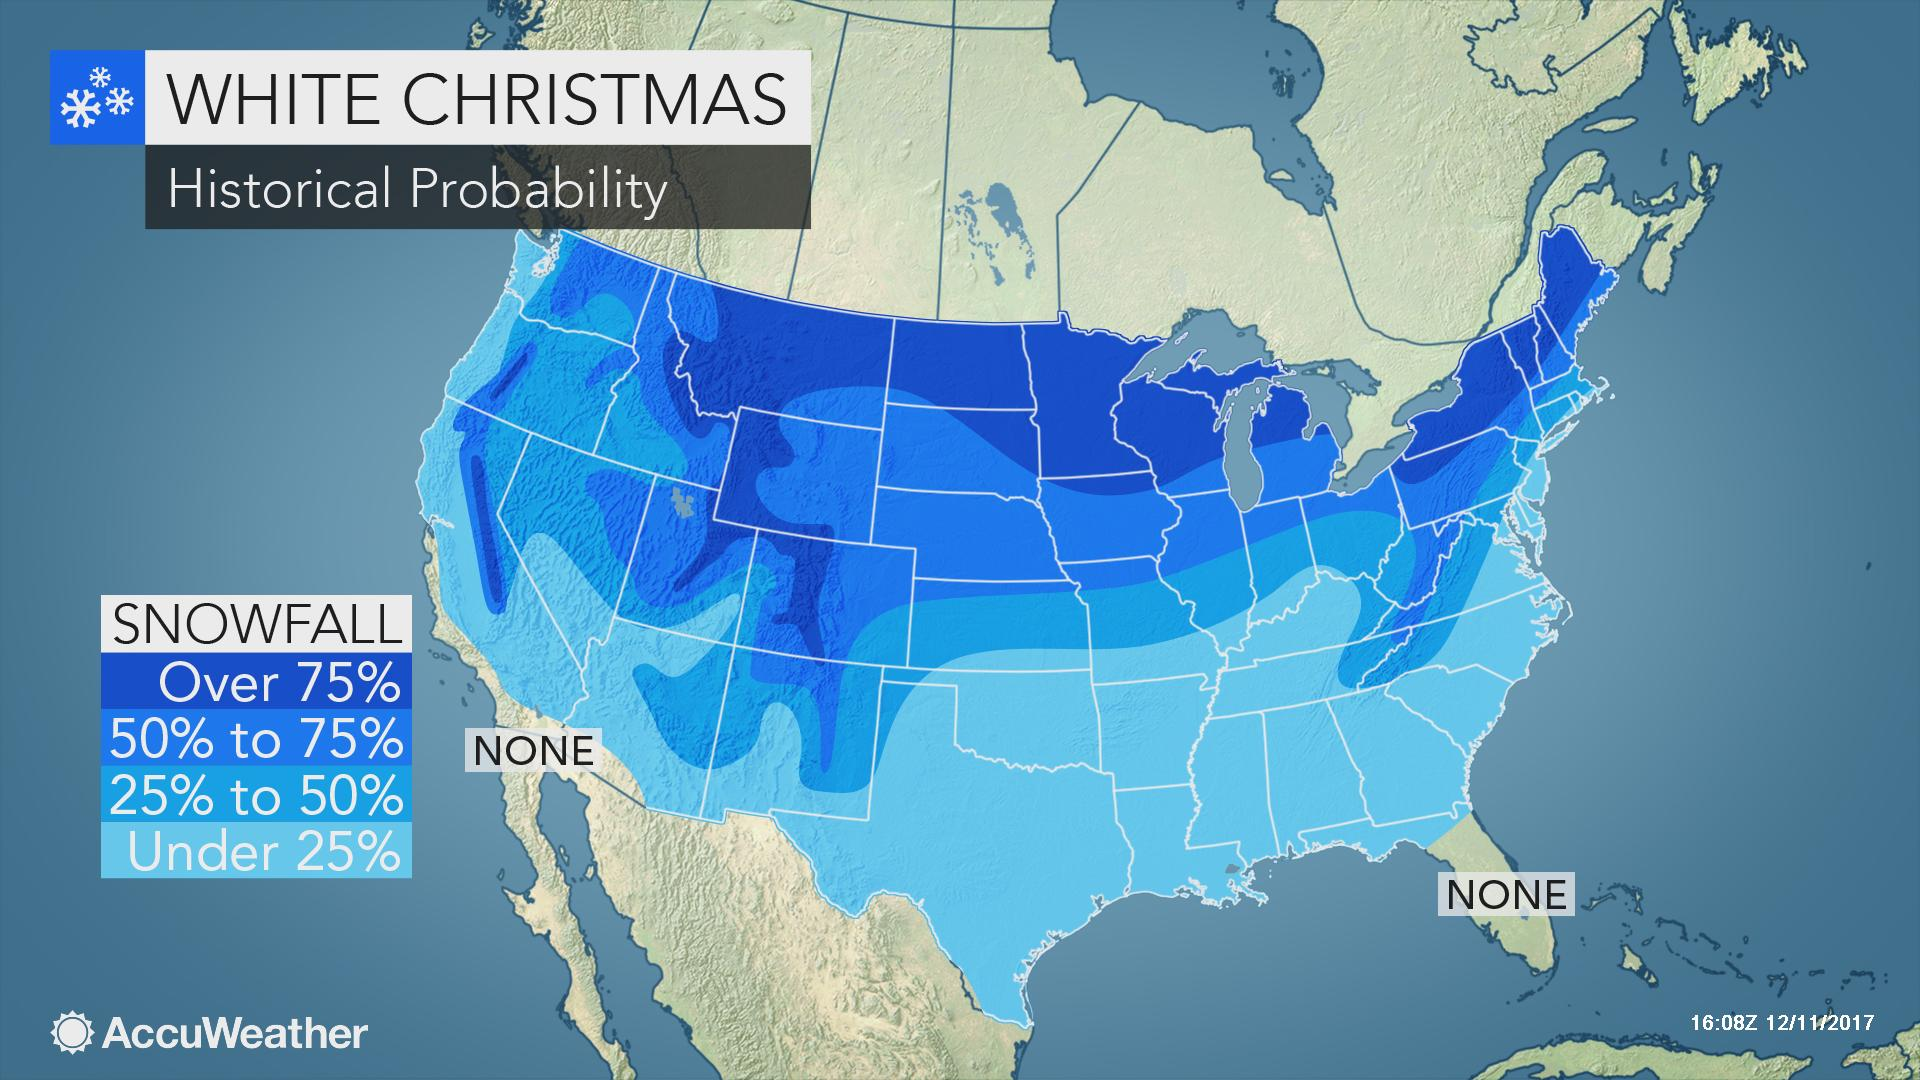 Chance Of White Christmas Map 2021 Where In The Us Is A White Christmas Most Likely This Year Accuweather